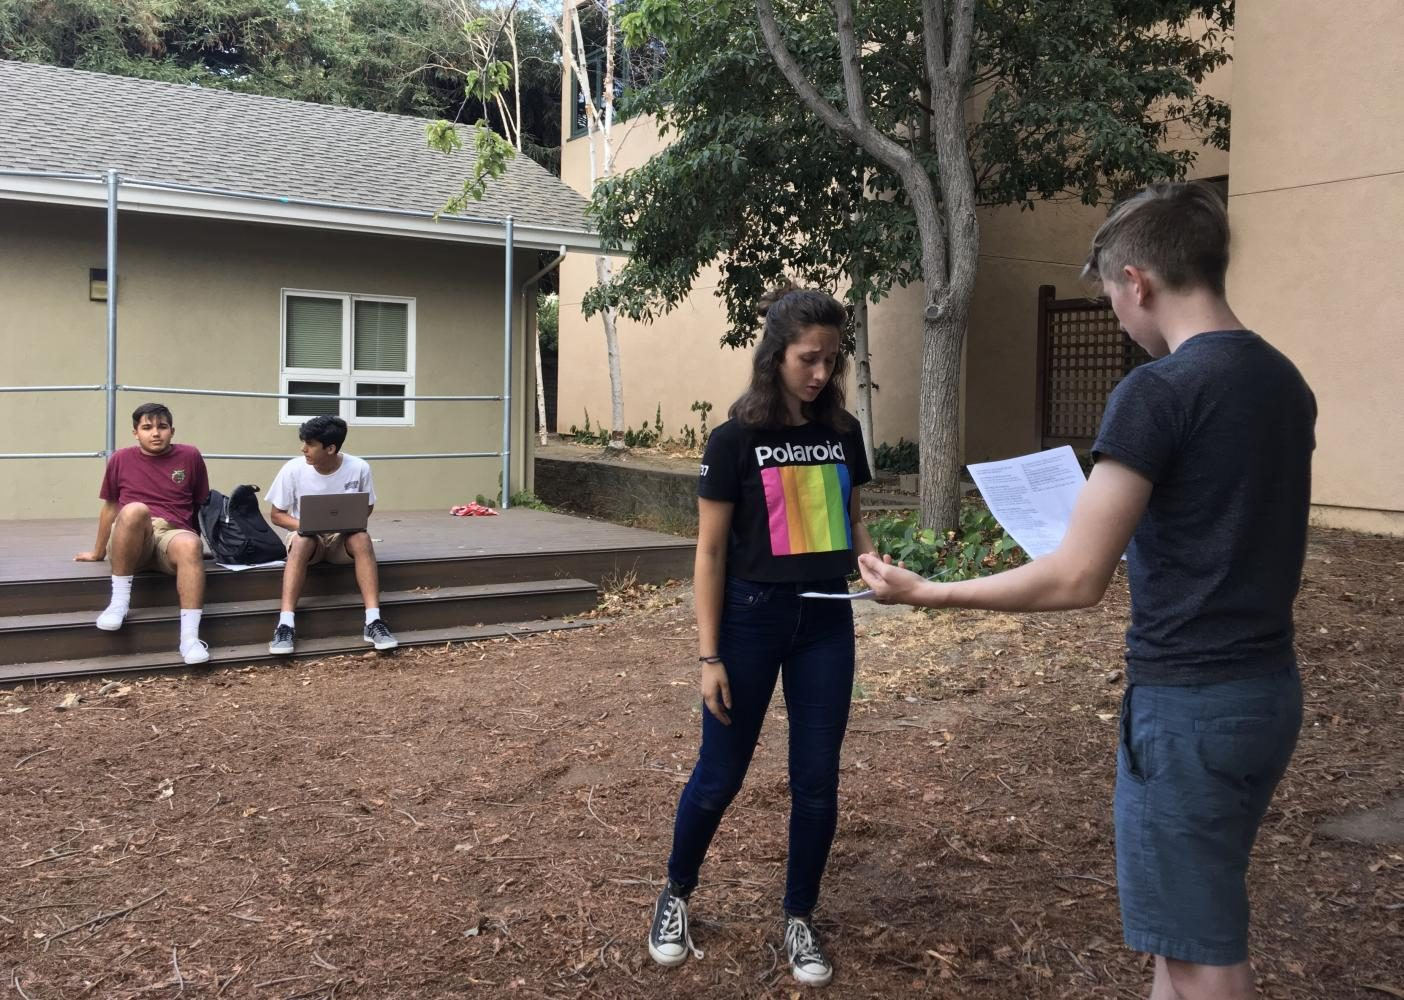 Junior+Dilara+Ezer+and+senior+Maxwell+Woehrman+rehearse+an+excerpt+of+a+scene+from+%E2%80%9CThe+Comedy+of+Errors%E2%80%9D+during+callbacks+yesterday.+The+play+will+be+performed+from+Oct.+26+to+Oct.+28+at+the+Blackford+theater.